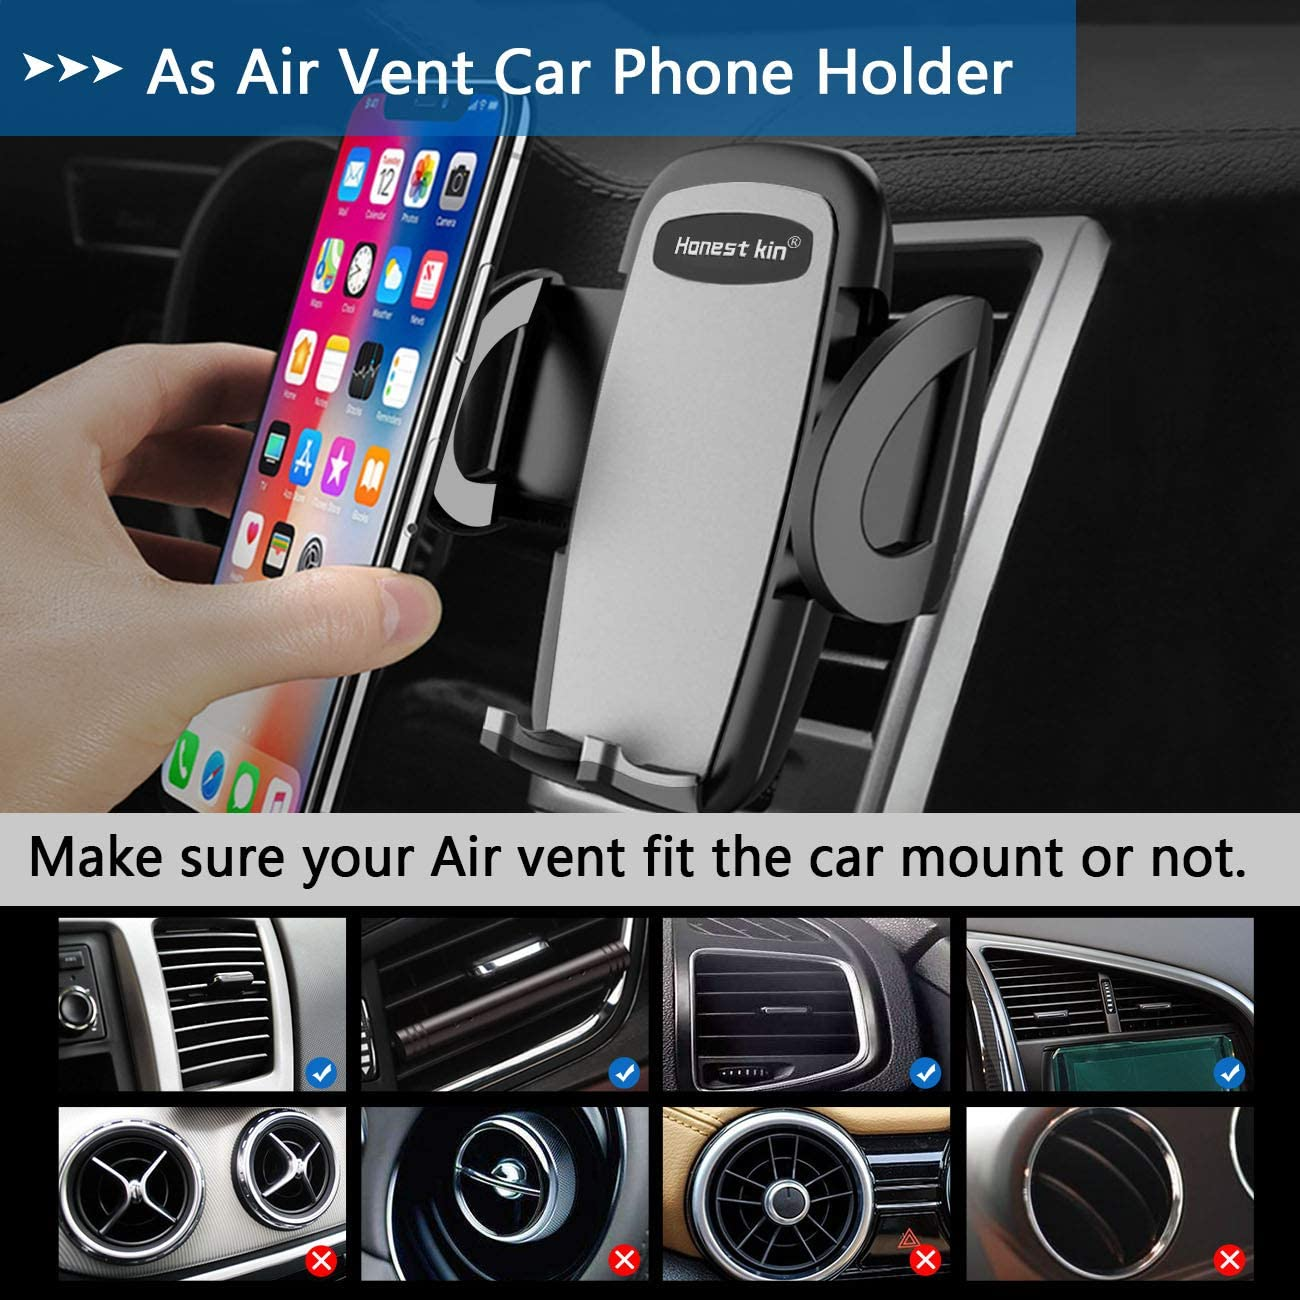 Phone Holder for Car HONEST KIN Long Neck 360 Degree Rotation Car Phone Mount Dash /& Windshield for iPhone 11 X XR XS MAX 8 7 6s Plus Samsung S10 S10E S8 S9 Plus Note 8 9 LG Google